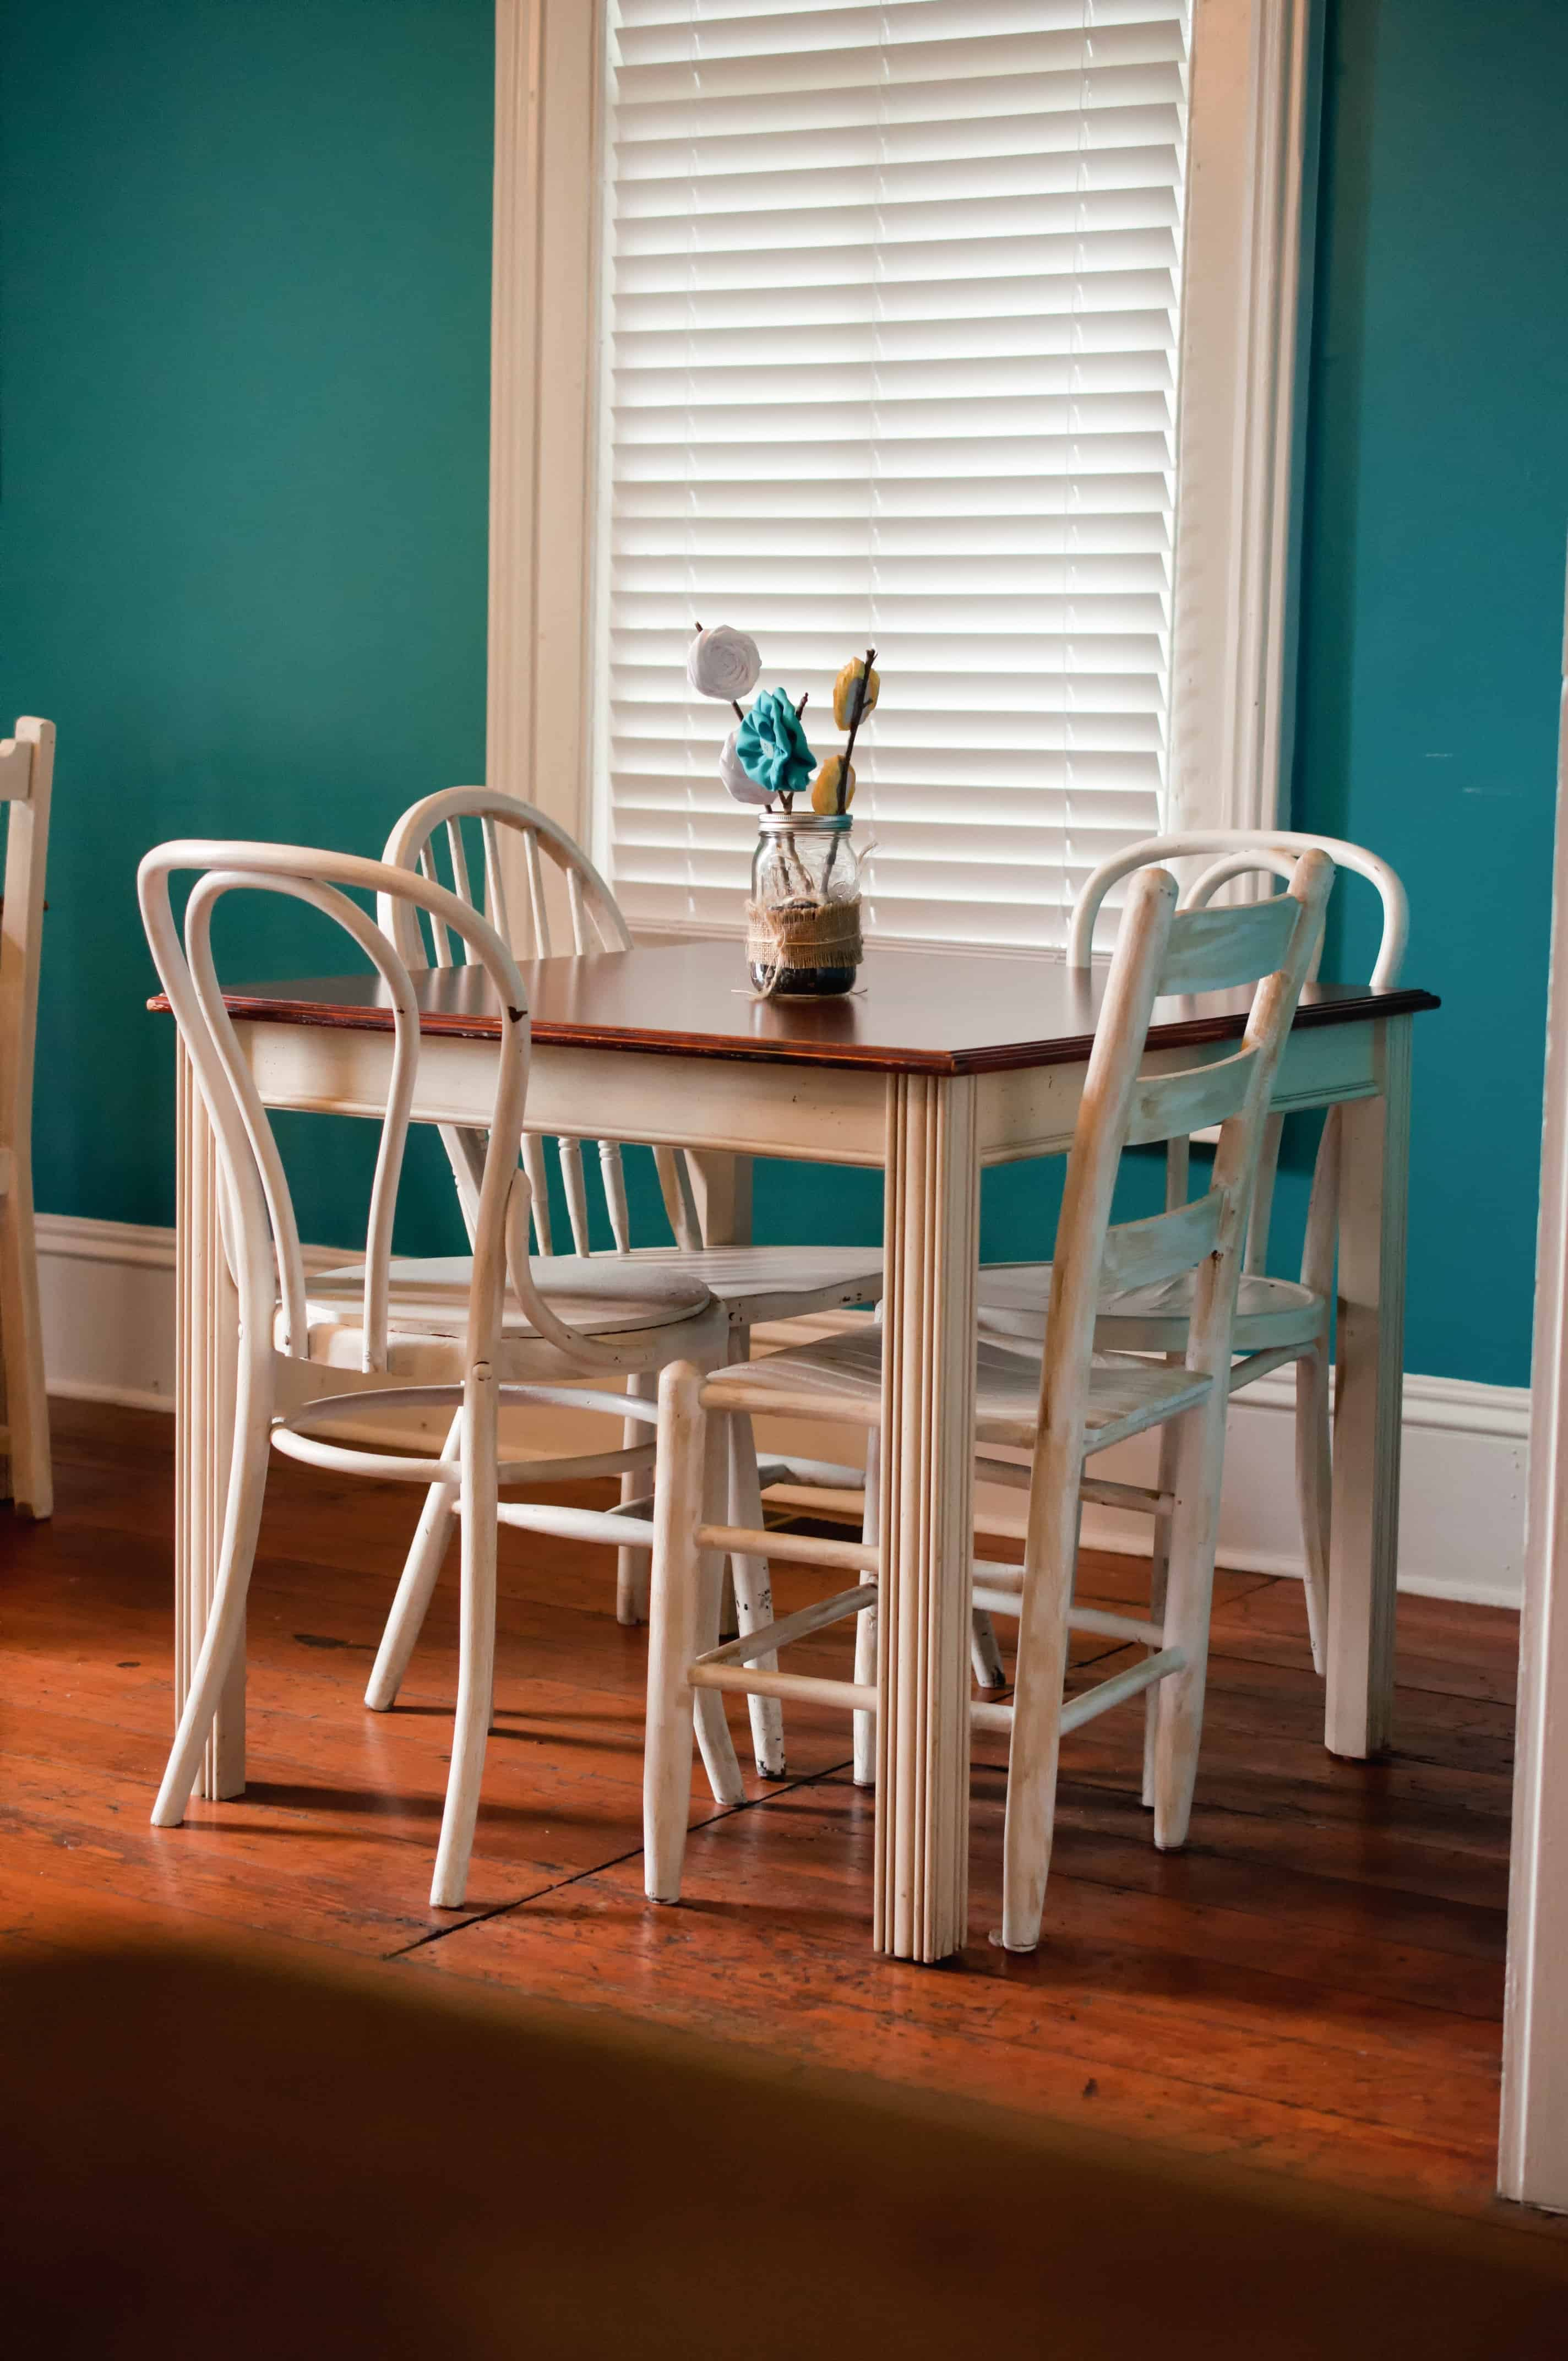 Home Makeover: Why Furniture Rental Is A Great Option: 4 Chair dinning table